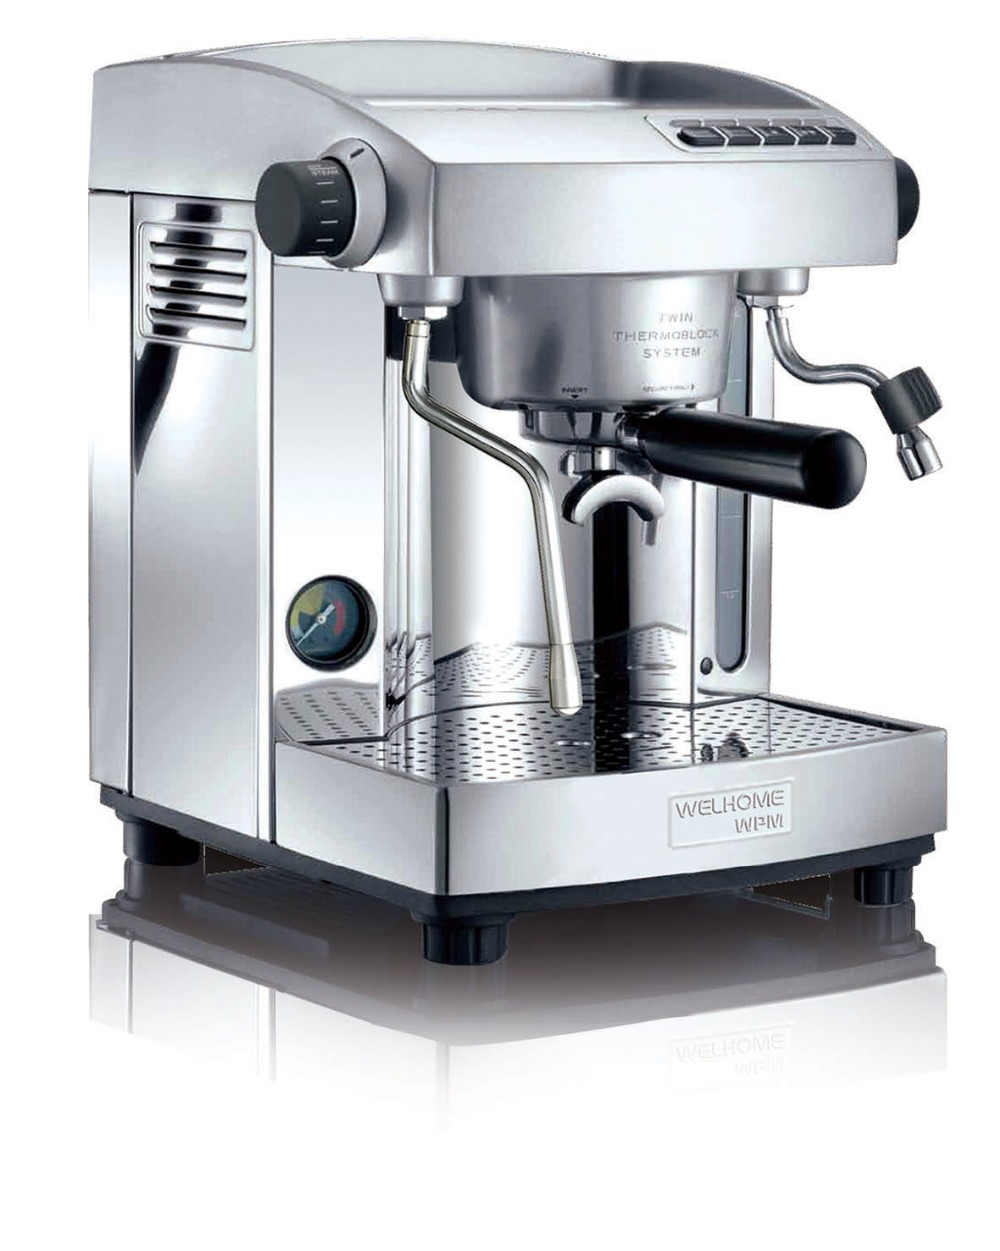 Machine A Cafe Us 779 Wpm Espresso Cafe Machine Professional Kd 210s2 Twins Thermo Block Espresso Machine Coffee Maker House Use Or Small Coffee Shop In Coffee